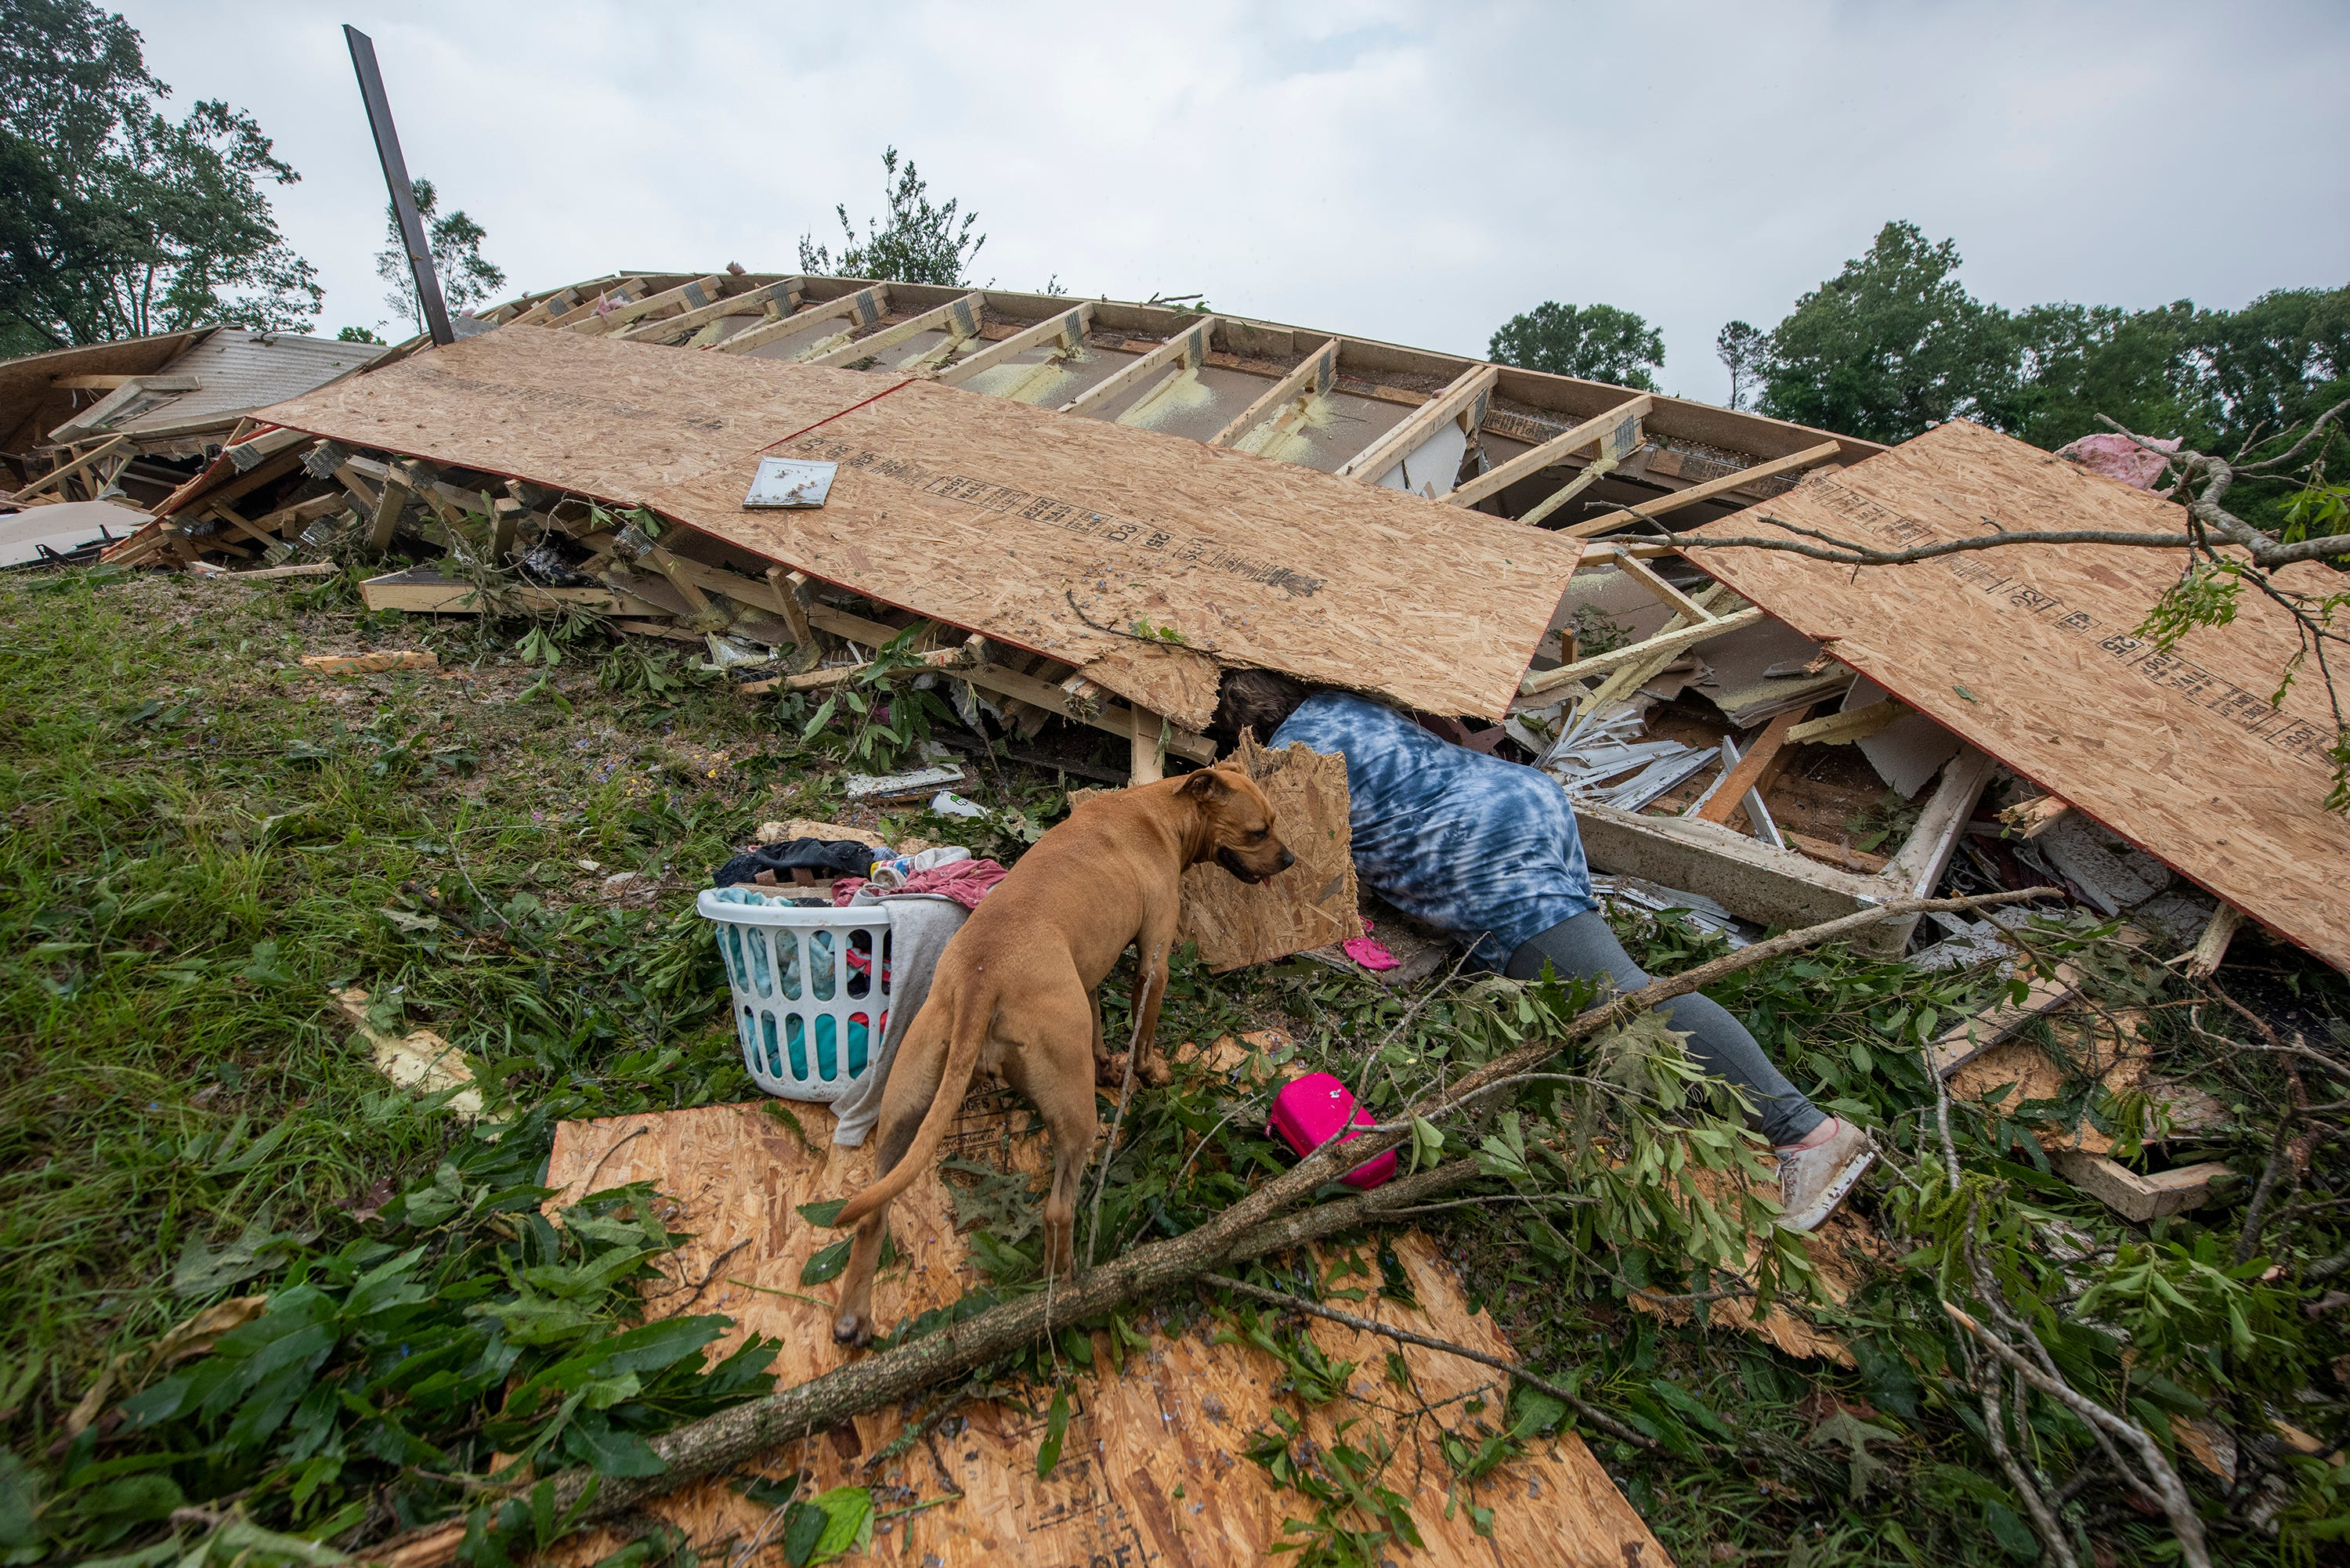 I saw trees flying : More than 100M people from New Mexico to Delaware at risk of severe weather, including tornadoes; 1 dead